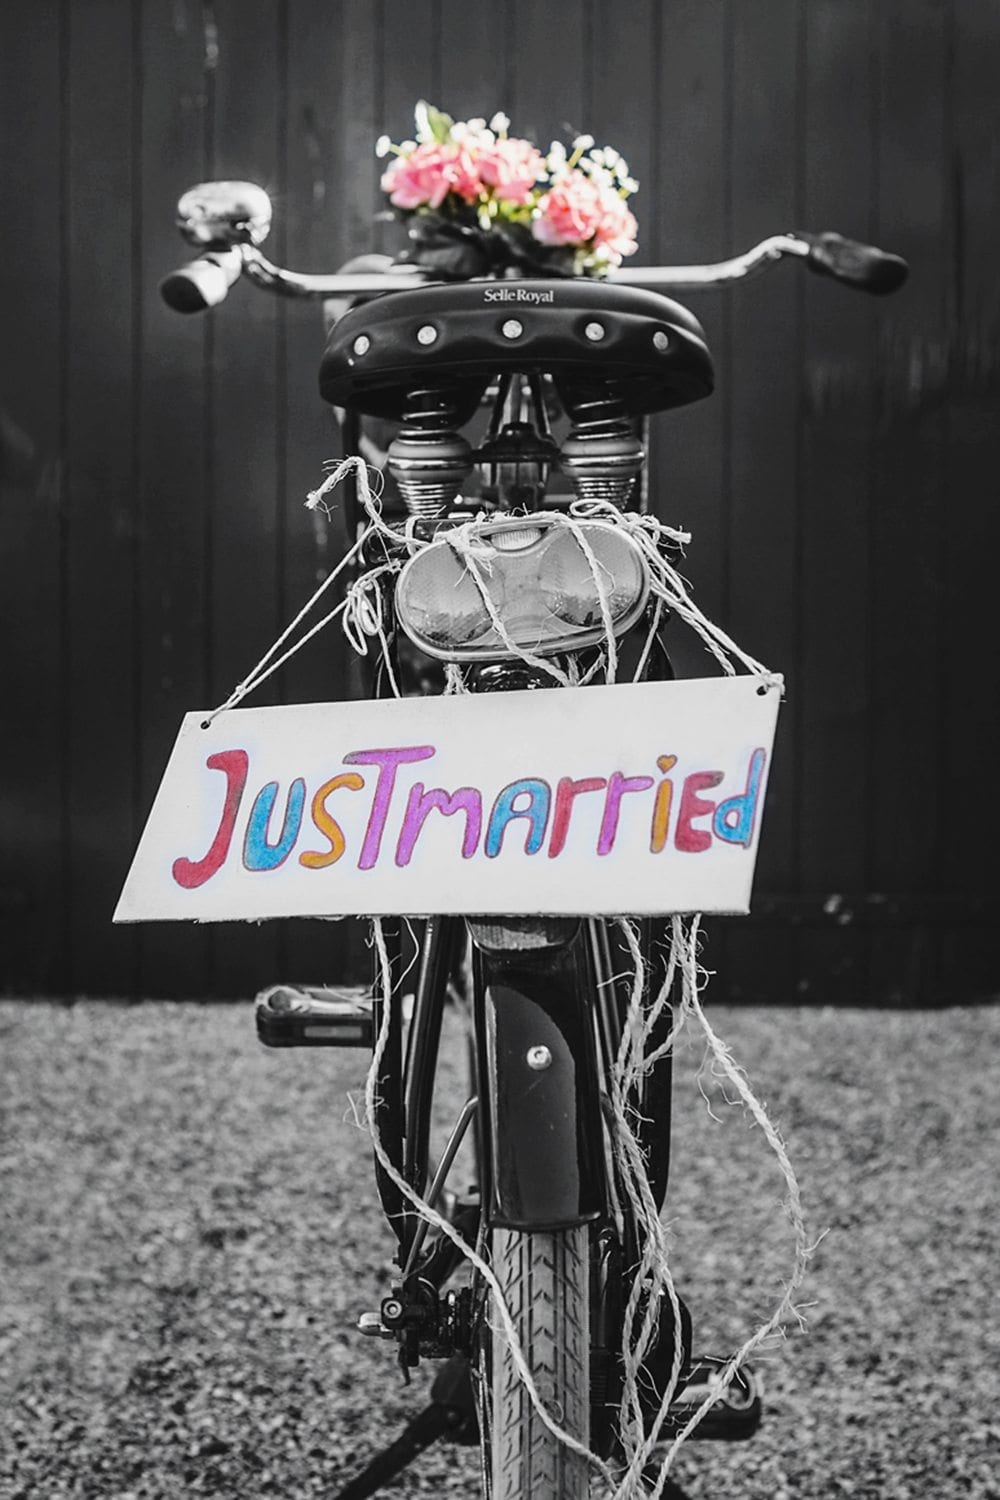 just married sign bike wedding photography lifestyle picturelyspoken